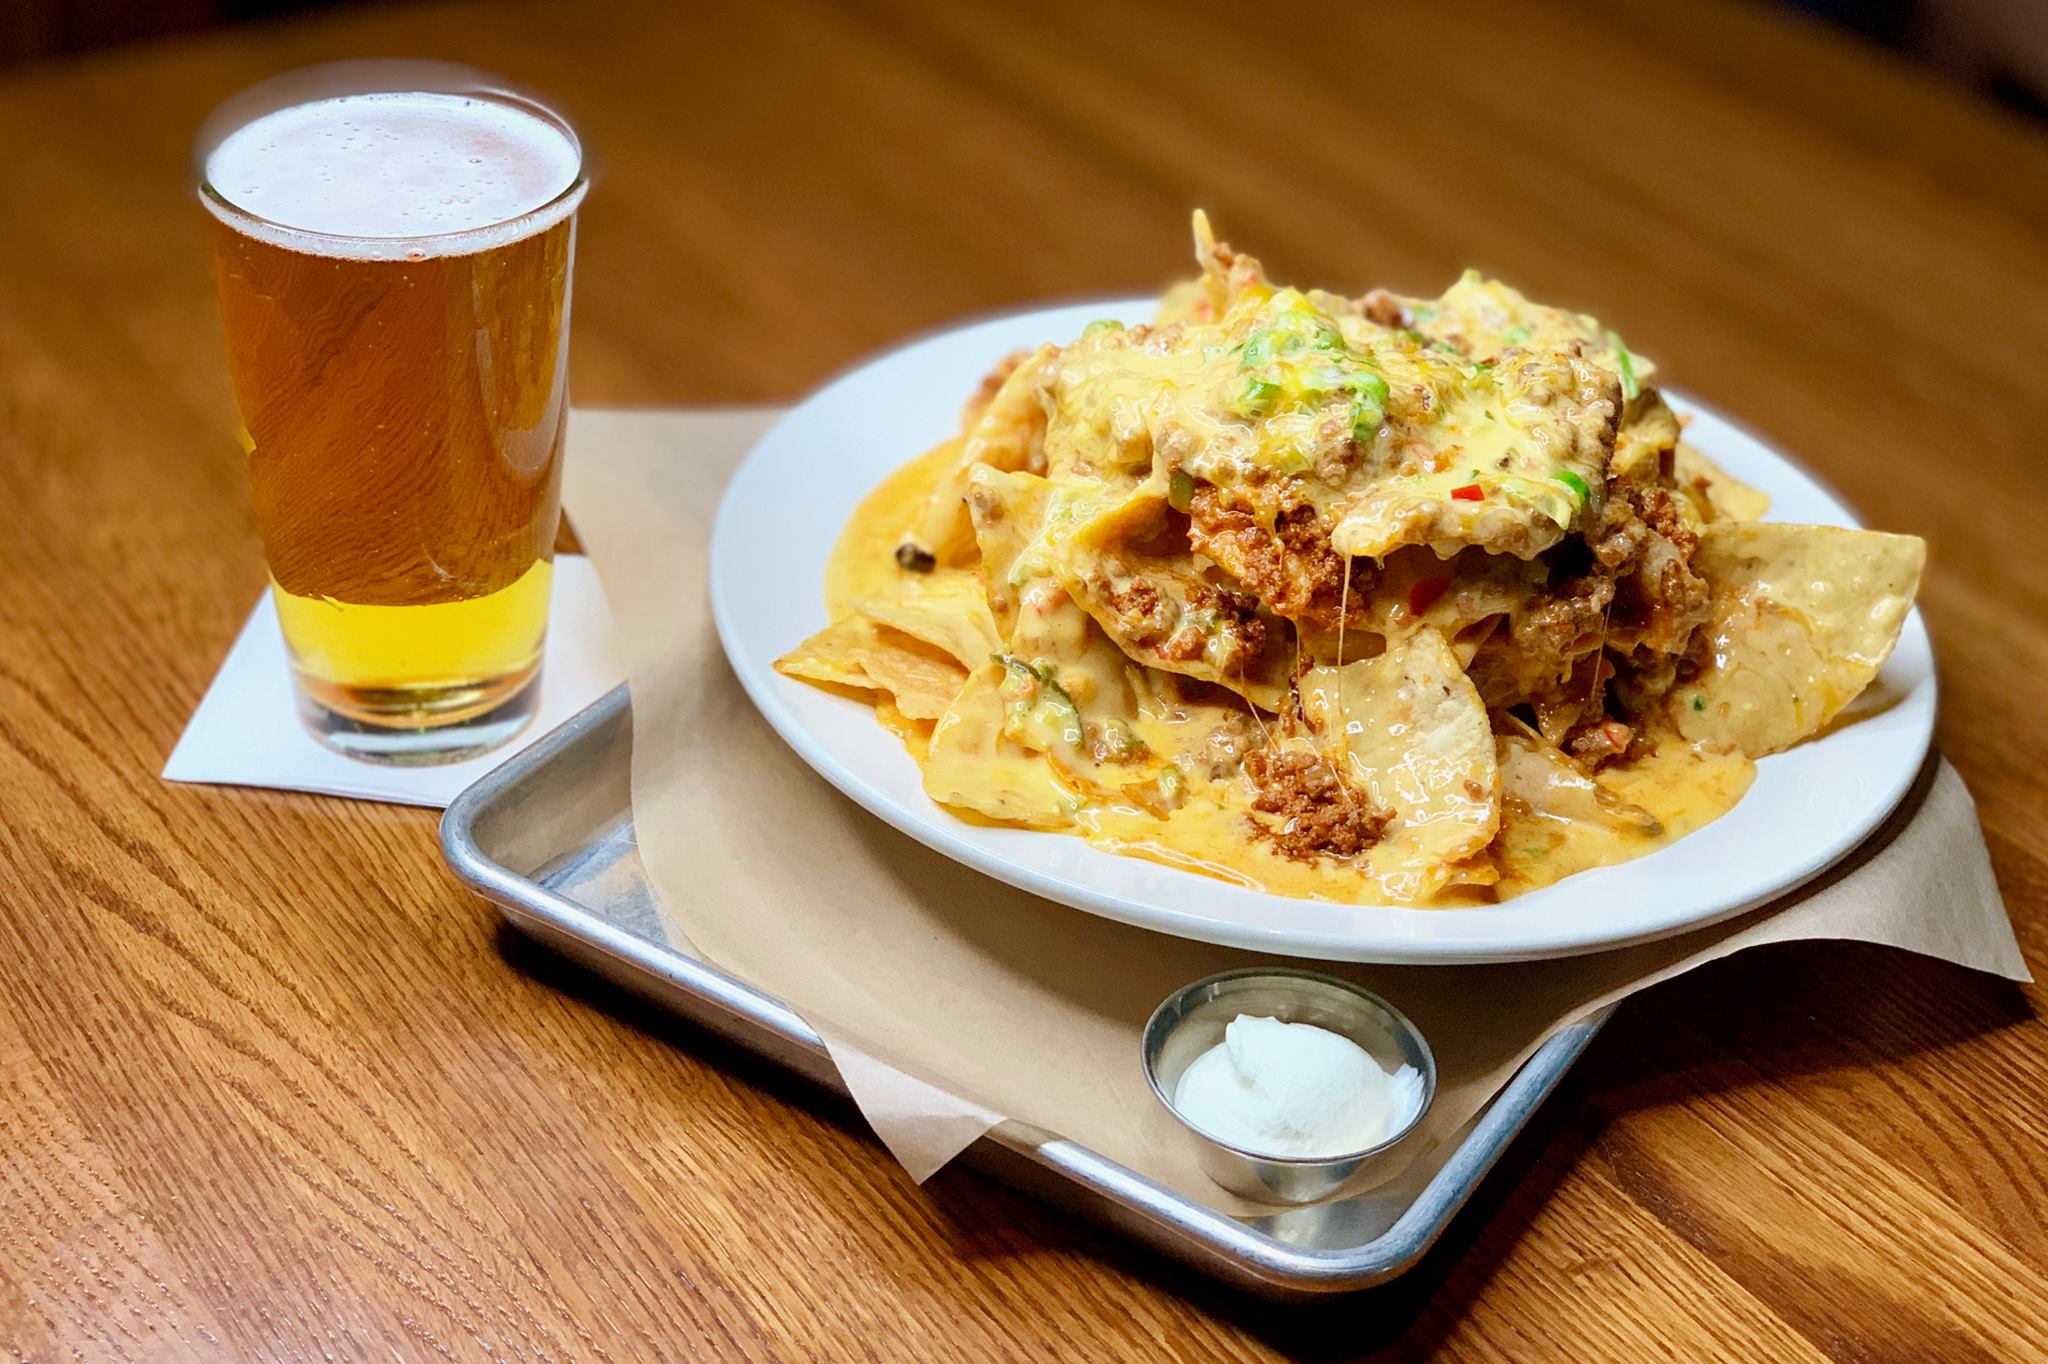 A glass of beer and a plate of nachos